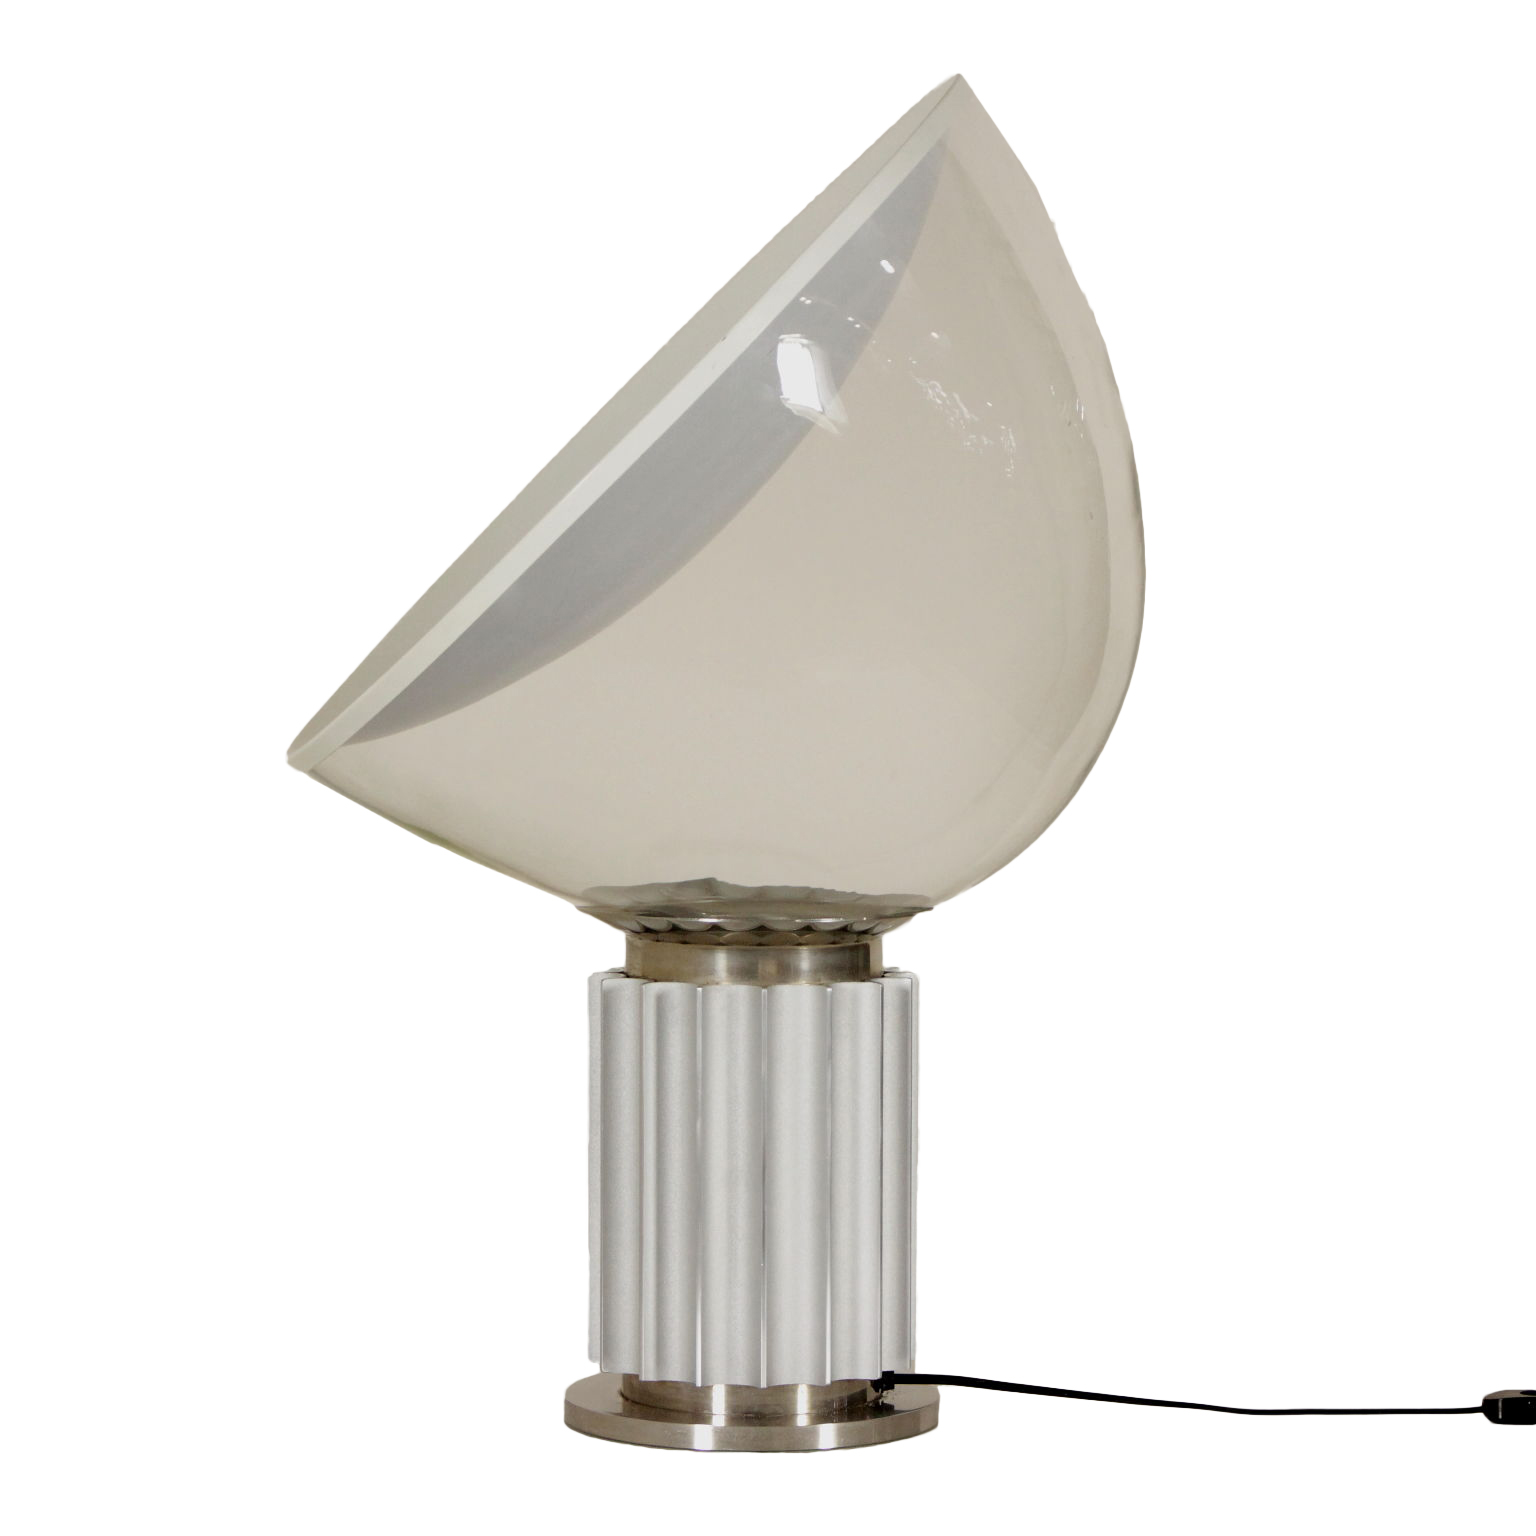 Taccia table lamp lighting modern design dimanoinmano taccia lamp mozeypictures Gallery